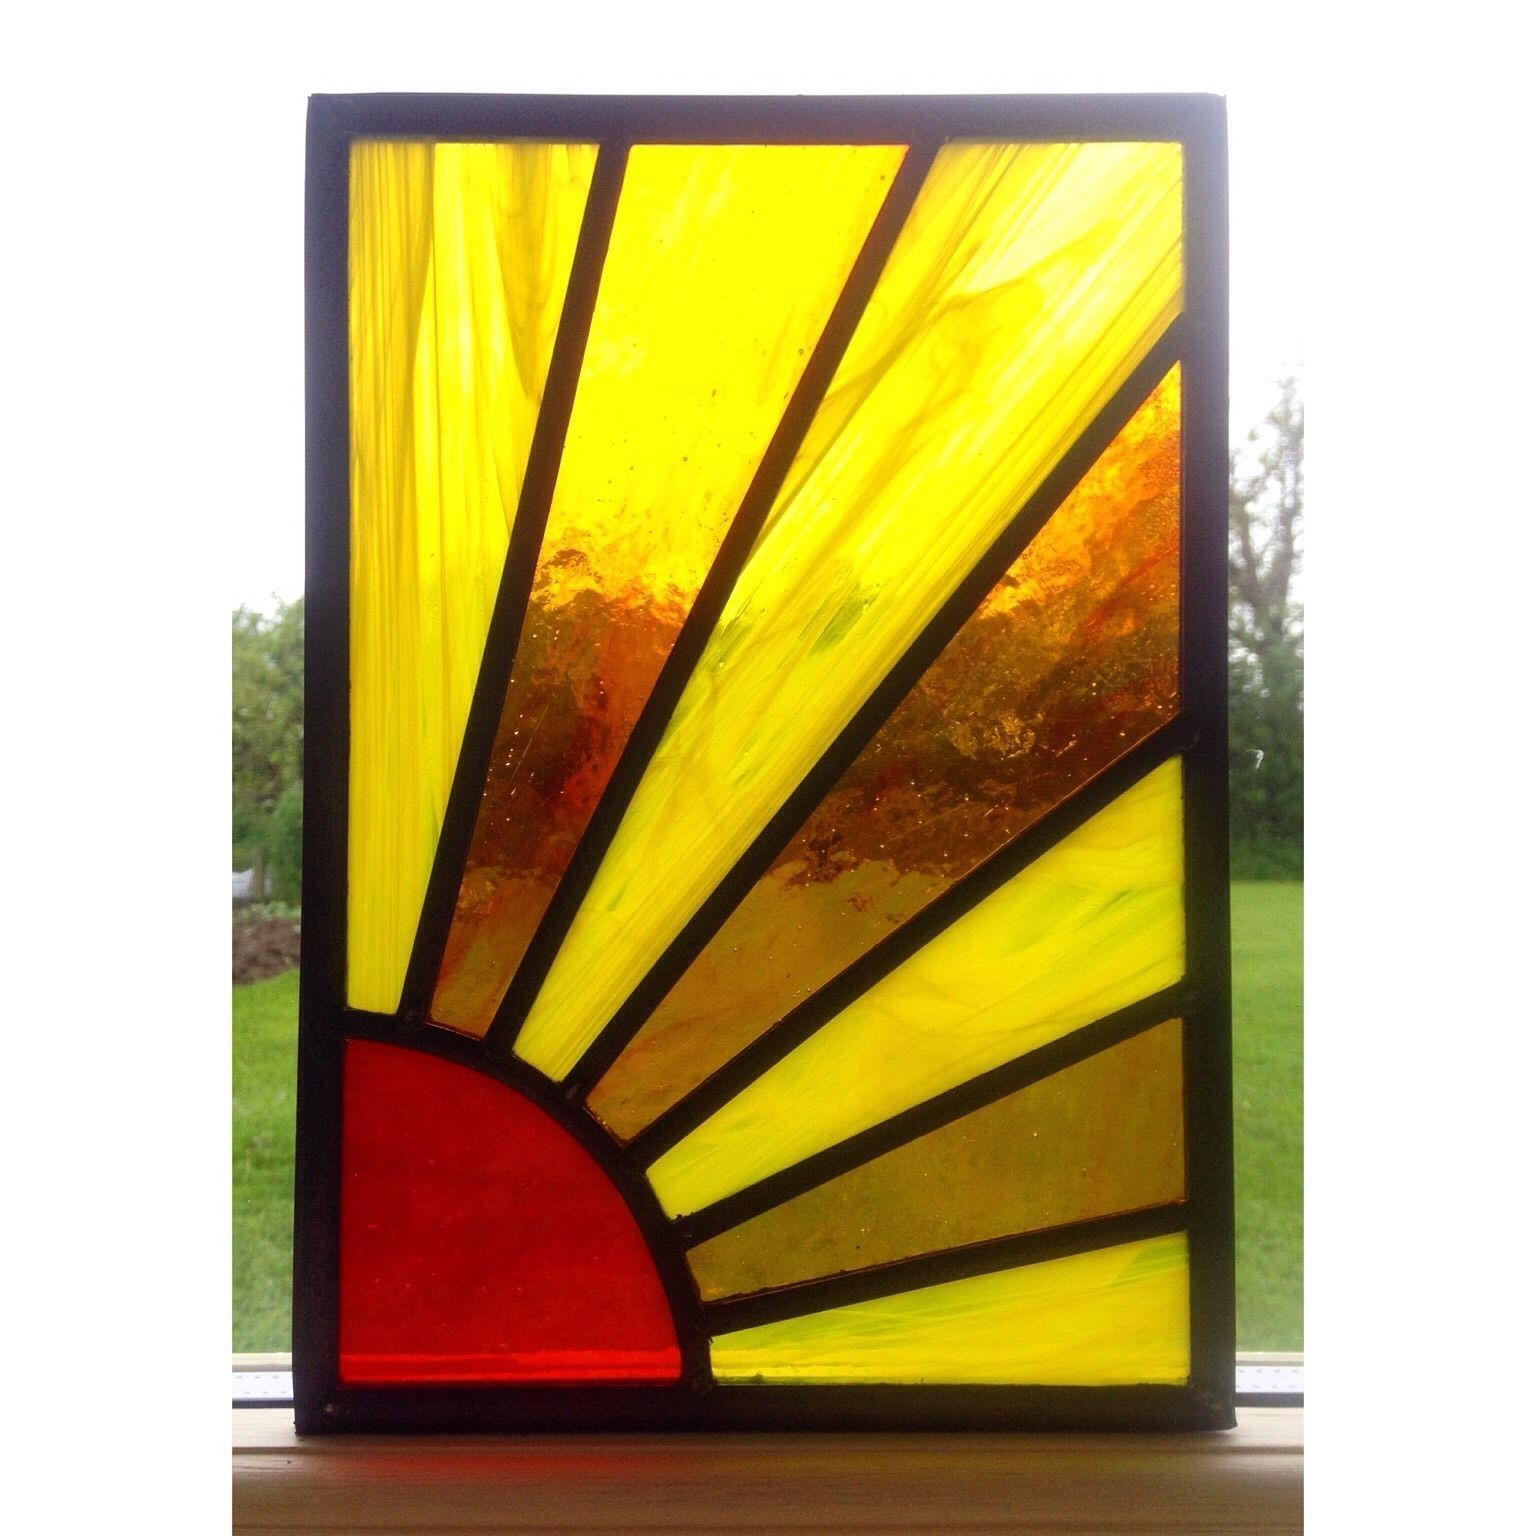 I Have Made This Stained Glass Panel Using The Traditional Stained Glass  Technique As Used In Church Stained Glass Windows Using A Range Of  Different ...